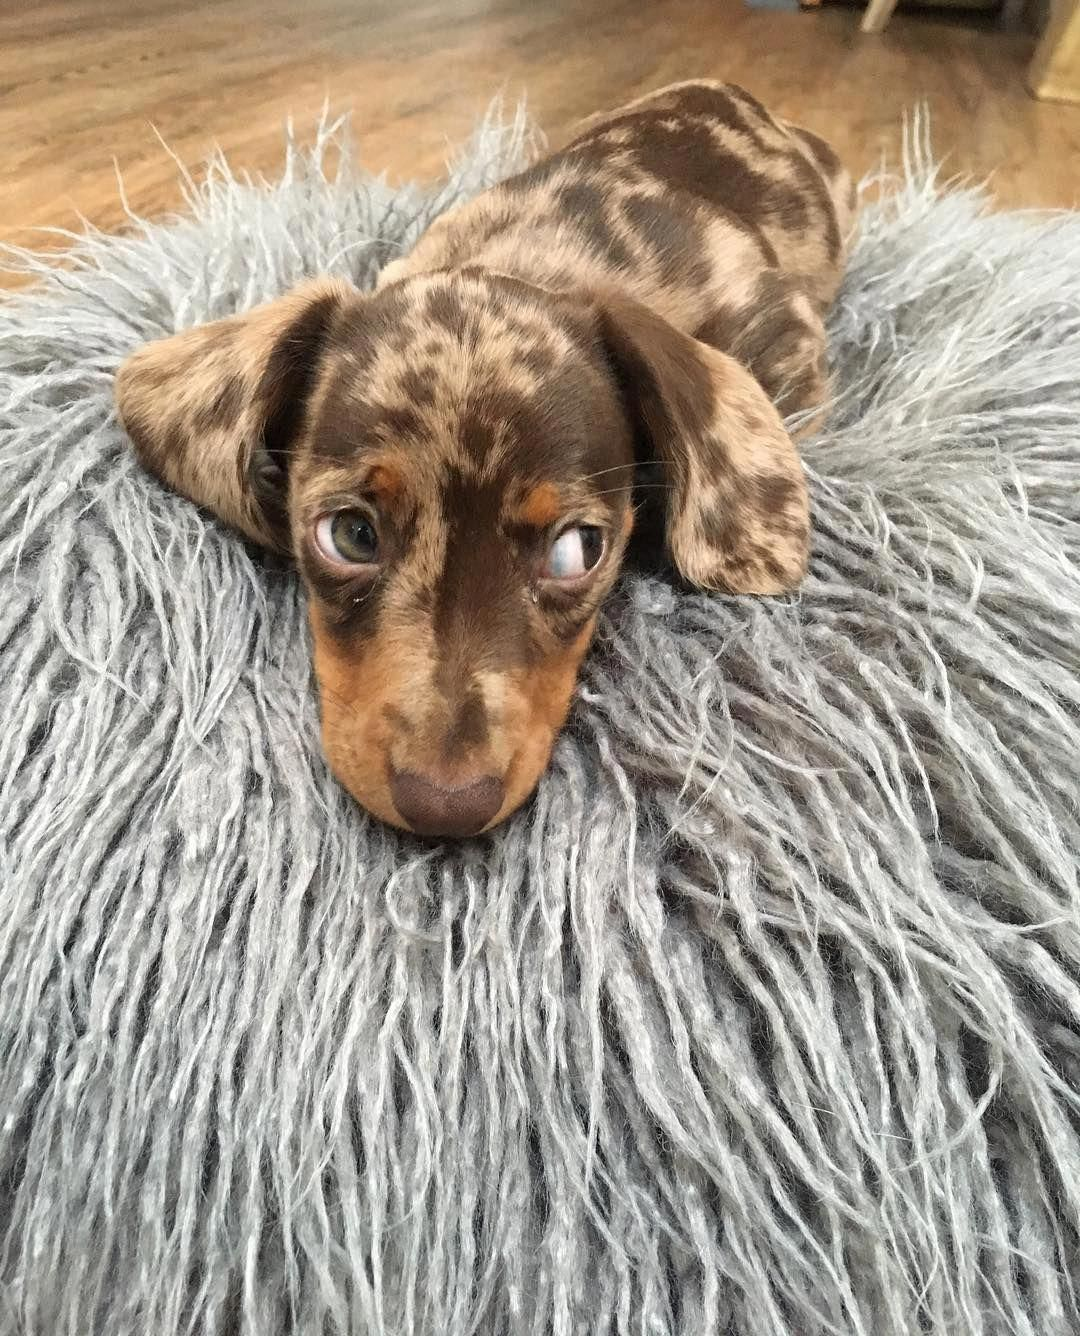 Find Out Additional Info On Dachshund Browse Through Our Site